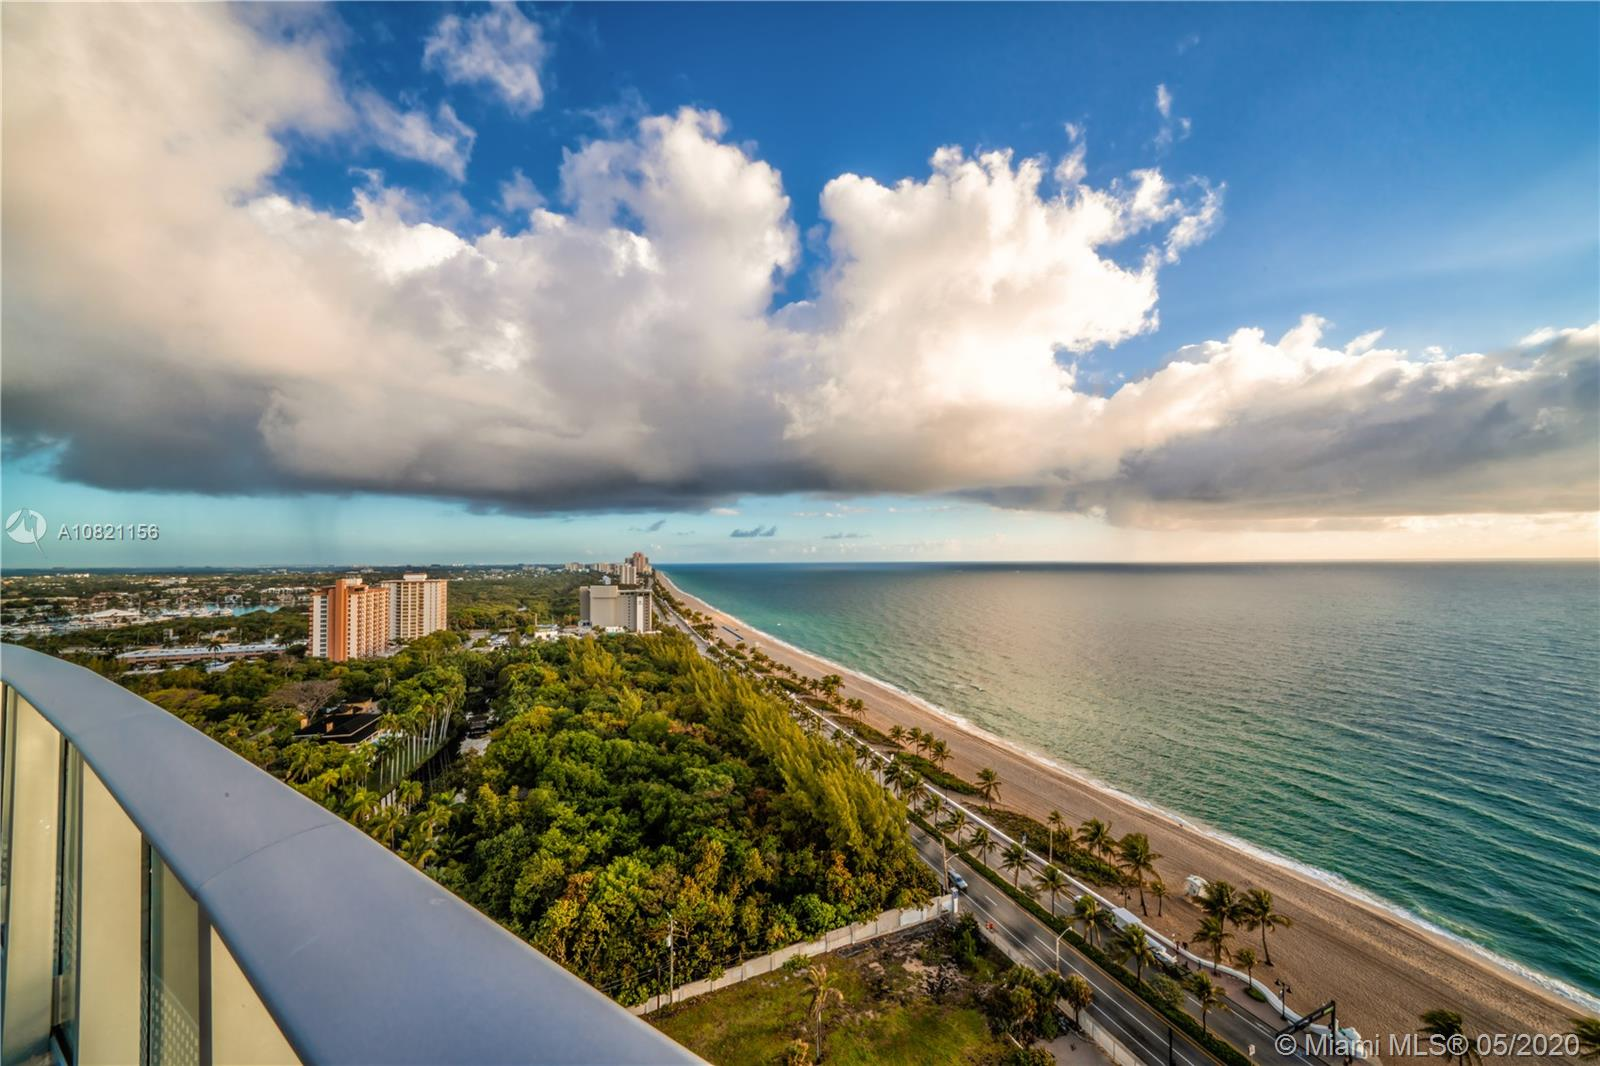 701 N Fort Lauderdale Beach Blvd, PH1802 - Fort Lauderdale, Florida